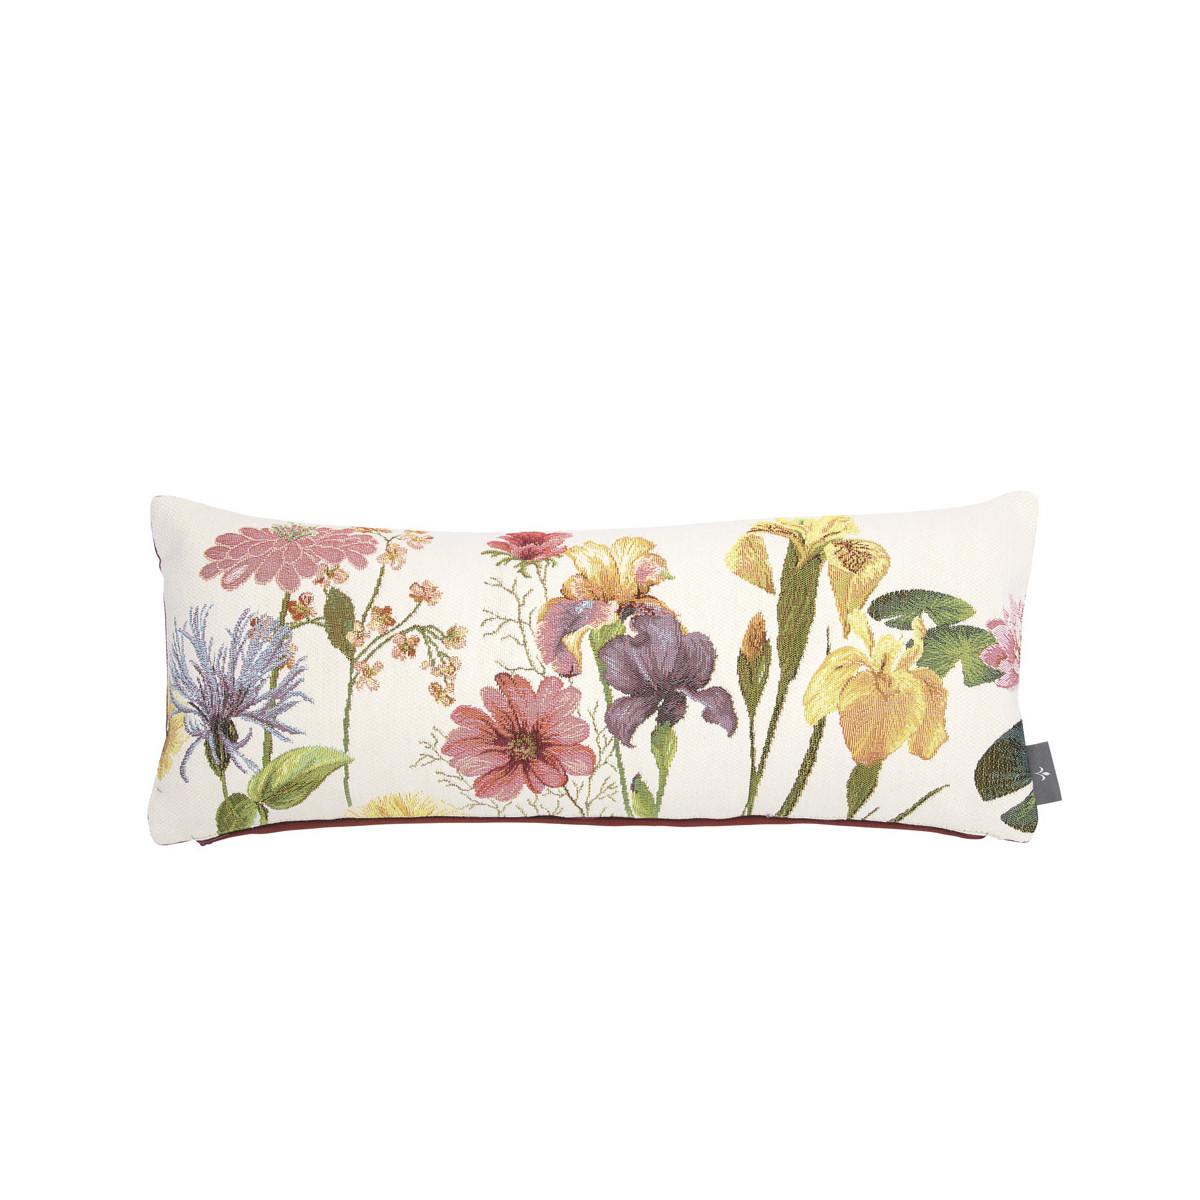 Coussin tapisserie giverny made in france blanc 25x60